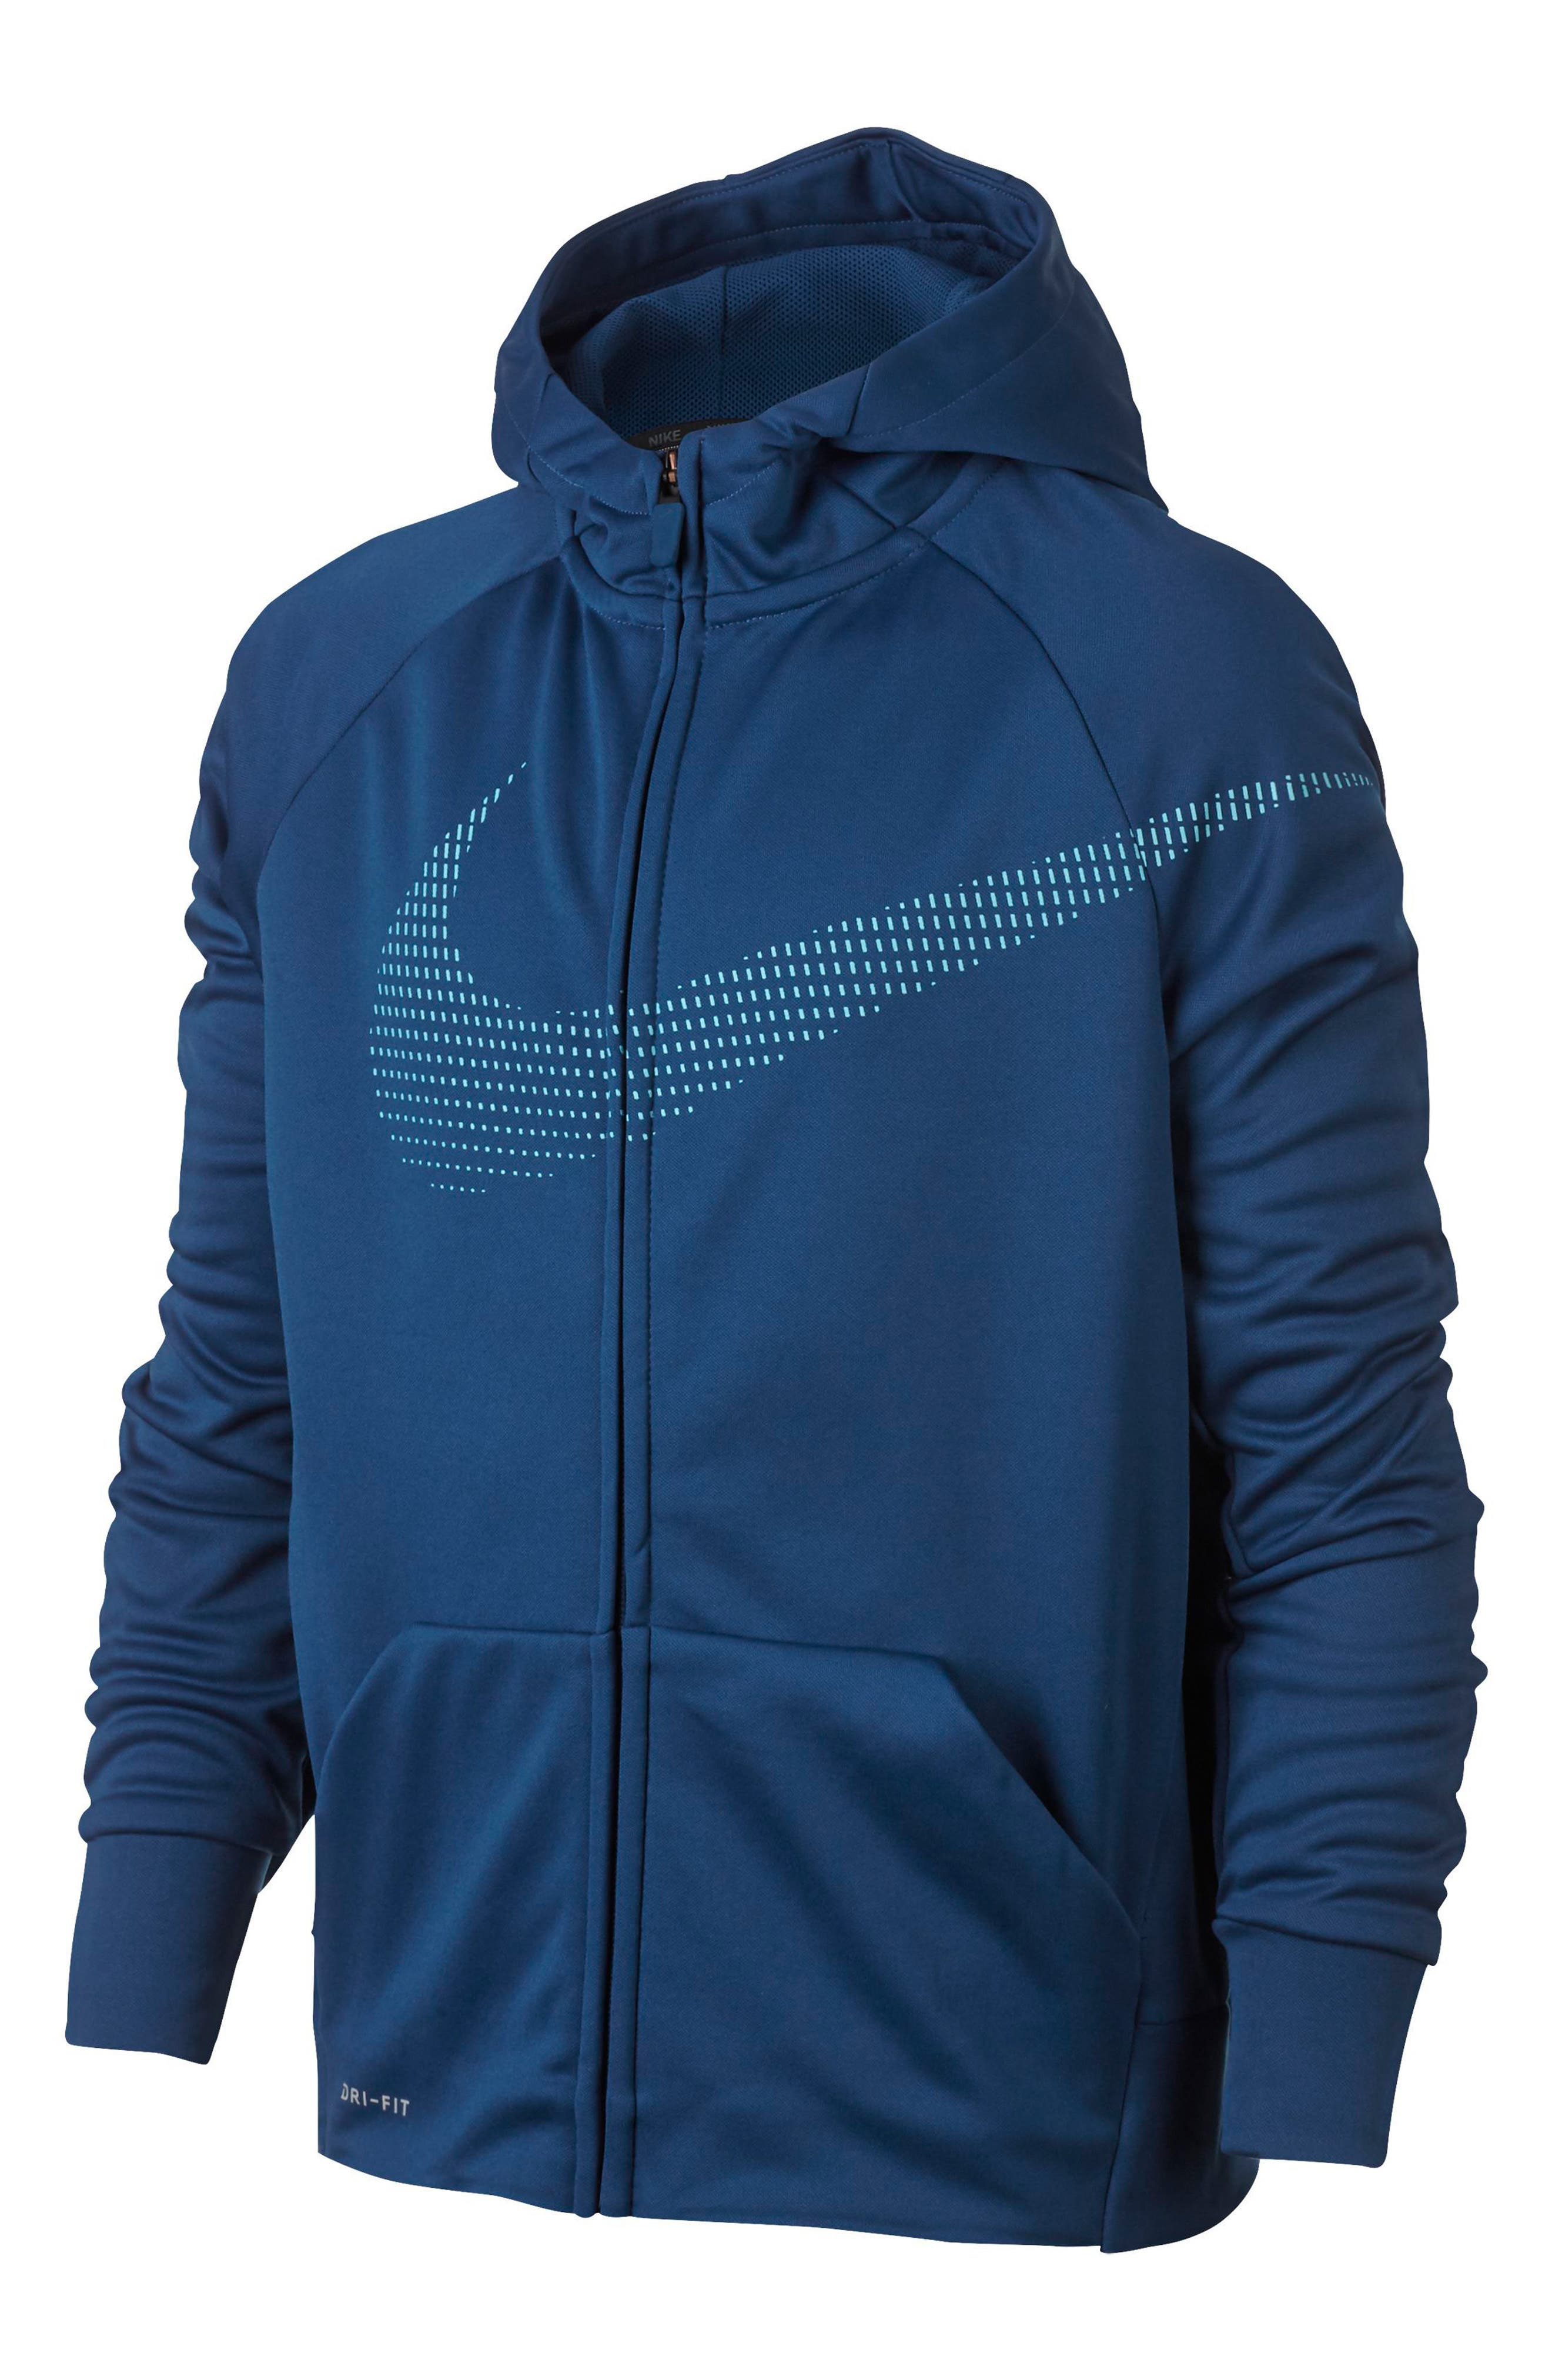 Alternate Image 1 Selected - Nike Therma Dry Hoodie (Little Boys & Big Boys)